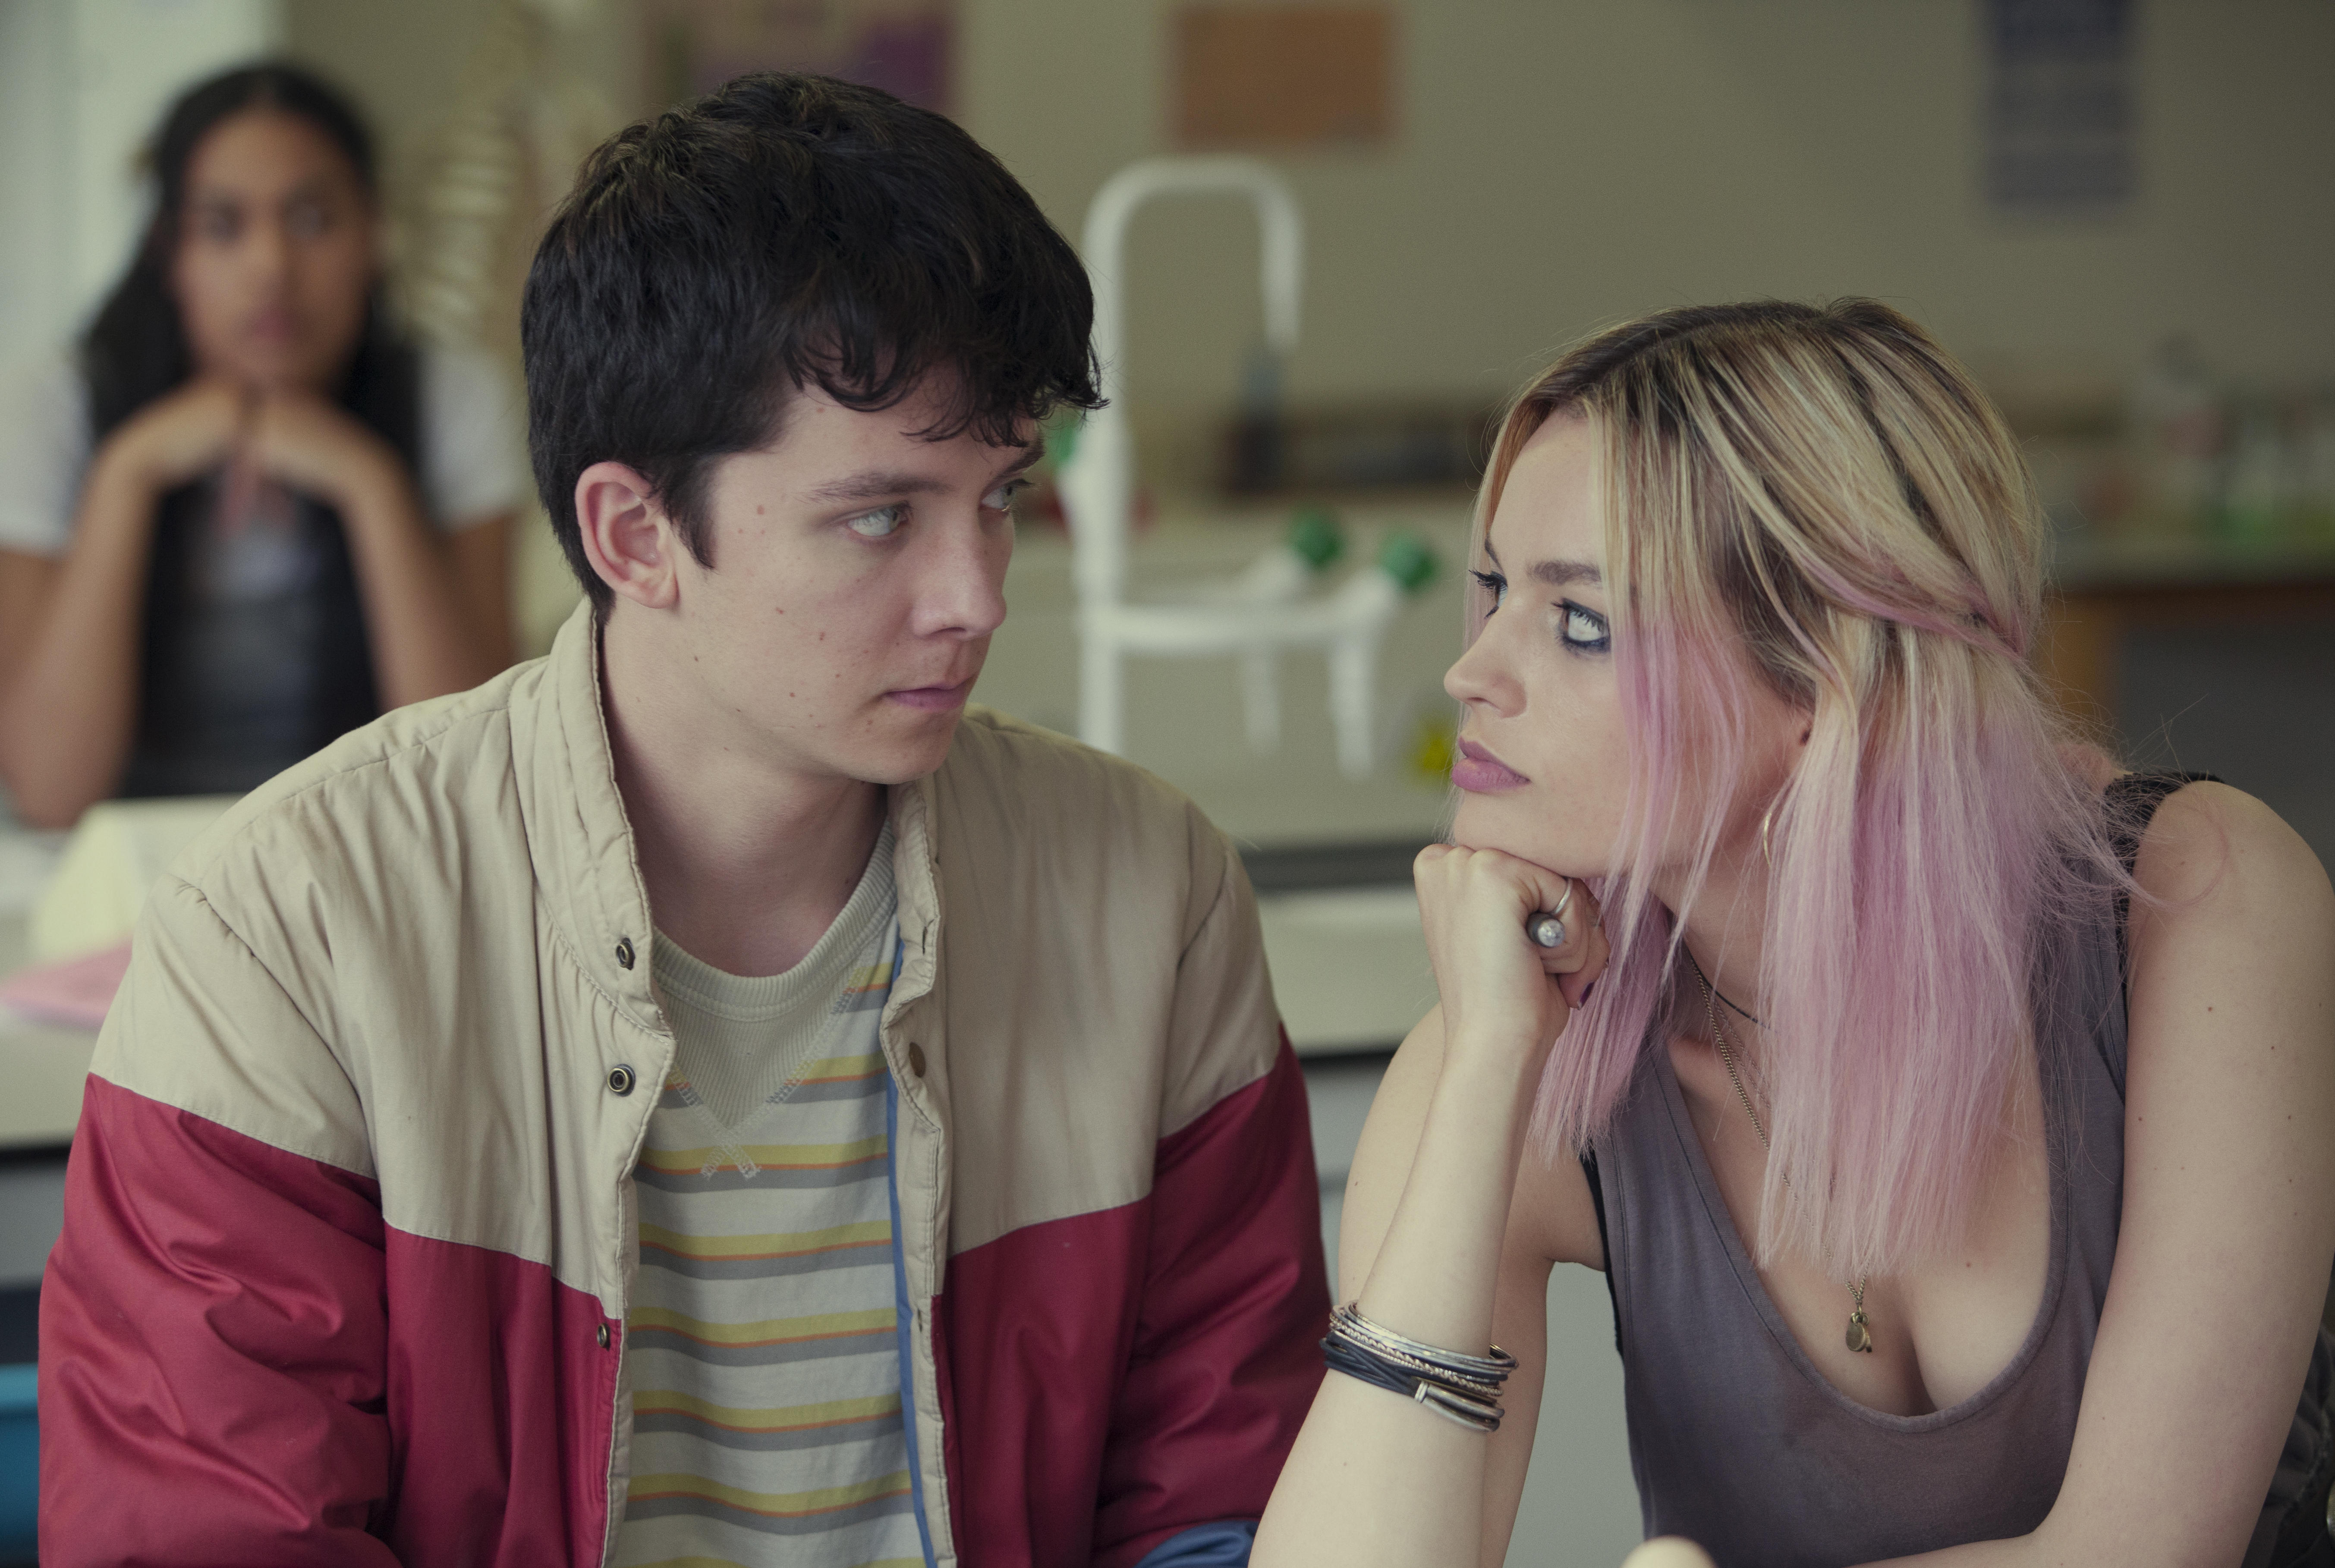 Two characters from Sex Education look at each other seated at a table